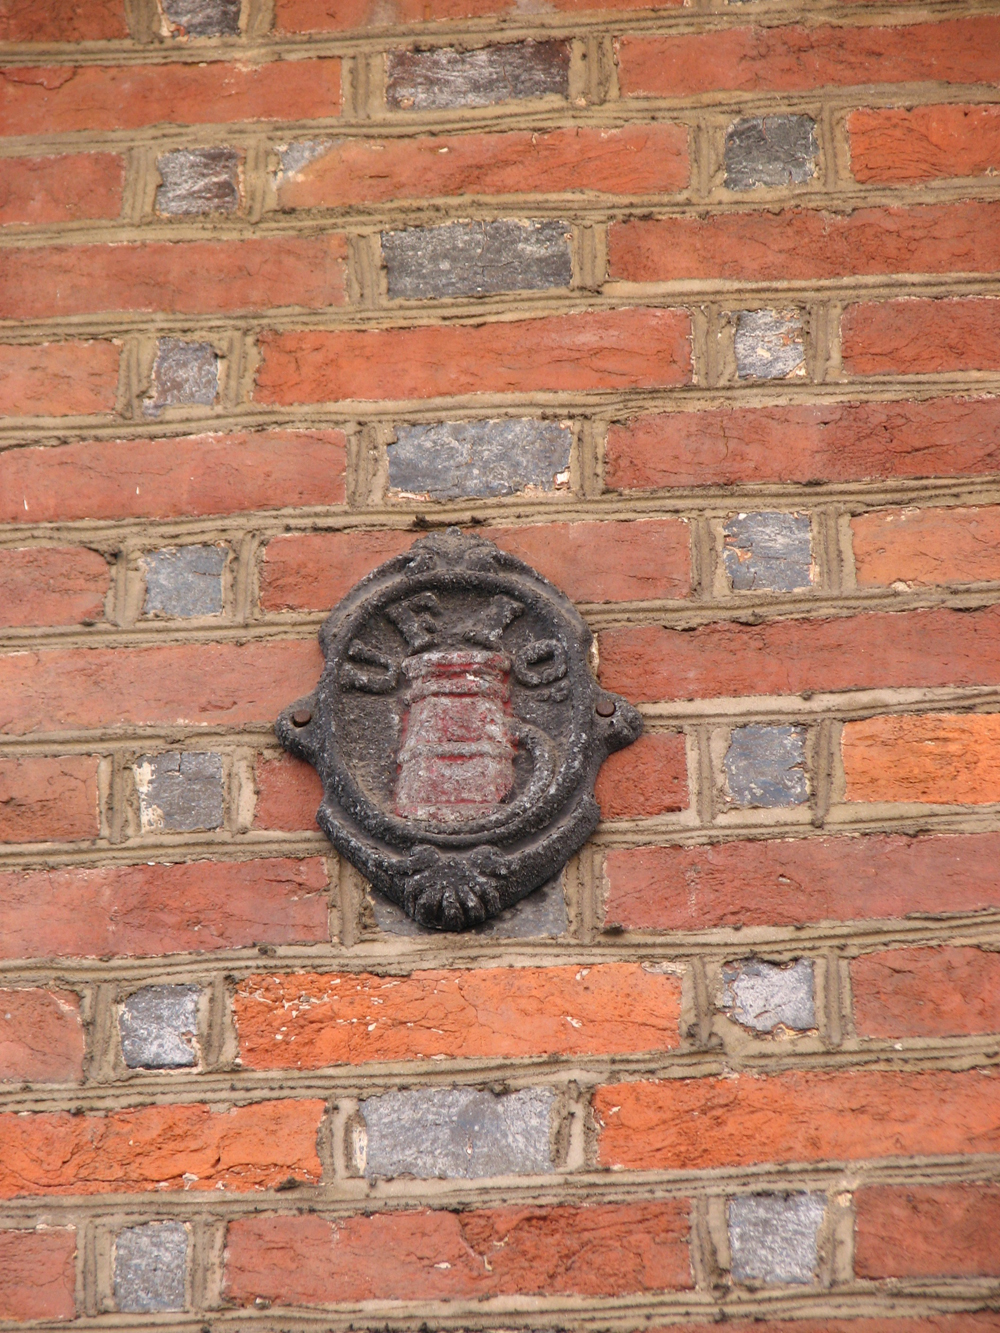 Many of the original fire insurance company plaques can be found on the homes.